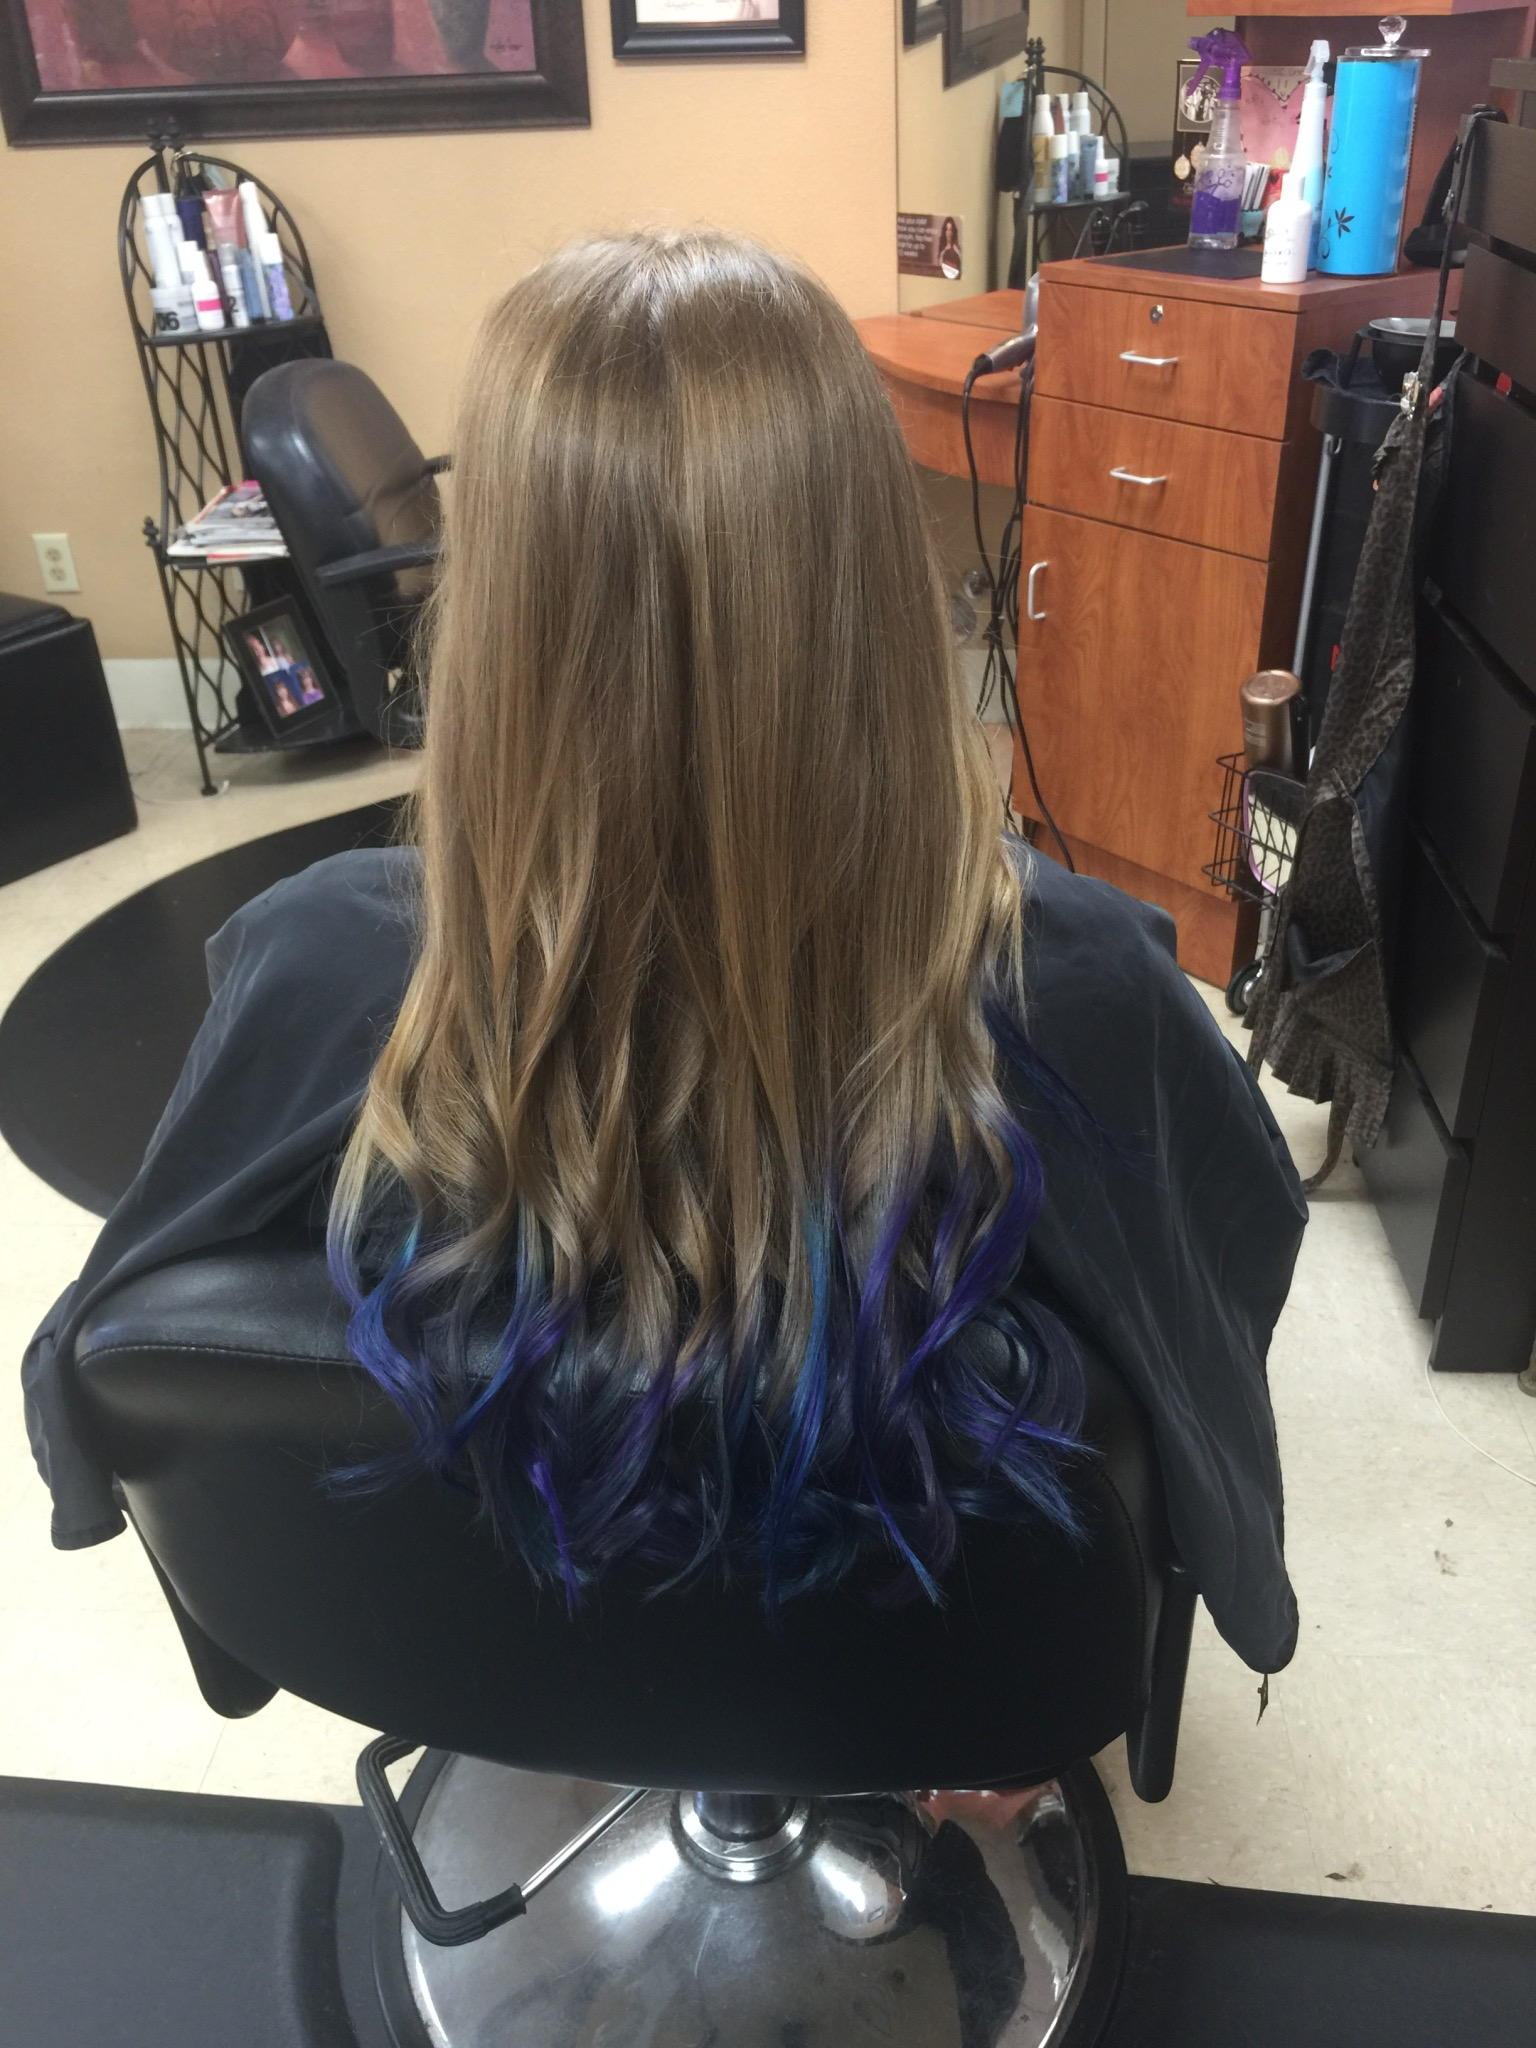 Dip dyed purple and blue